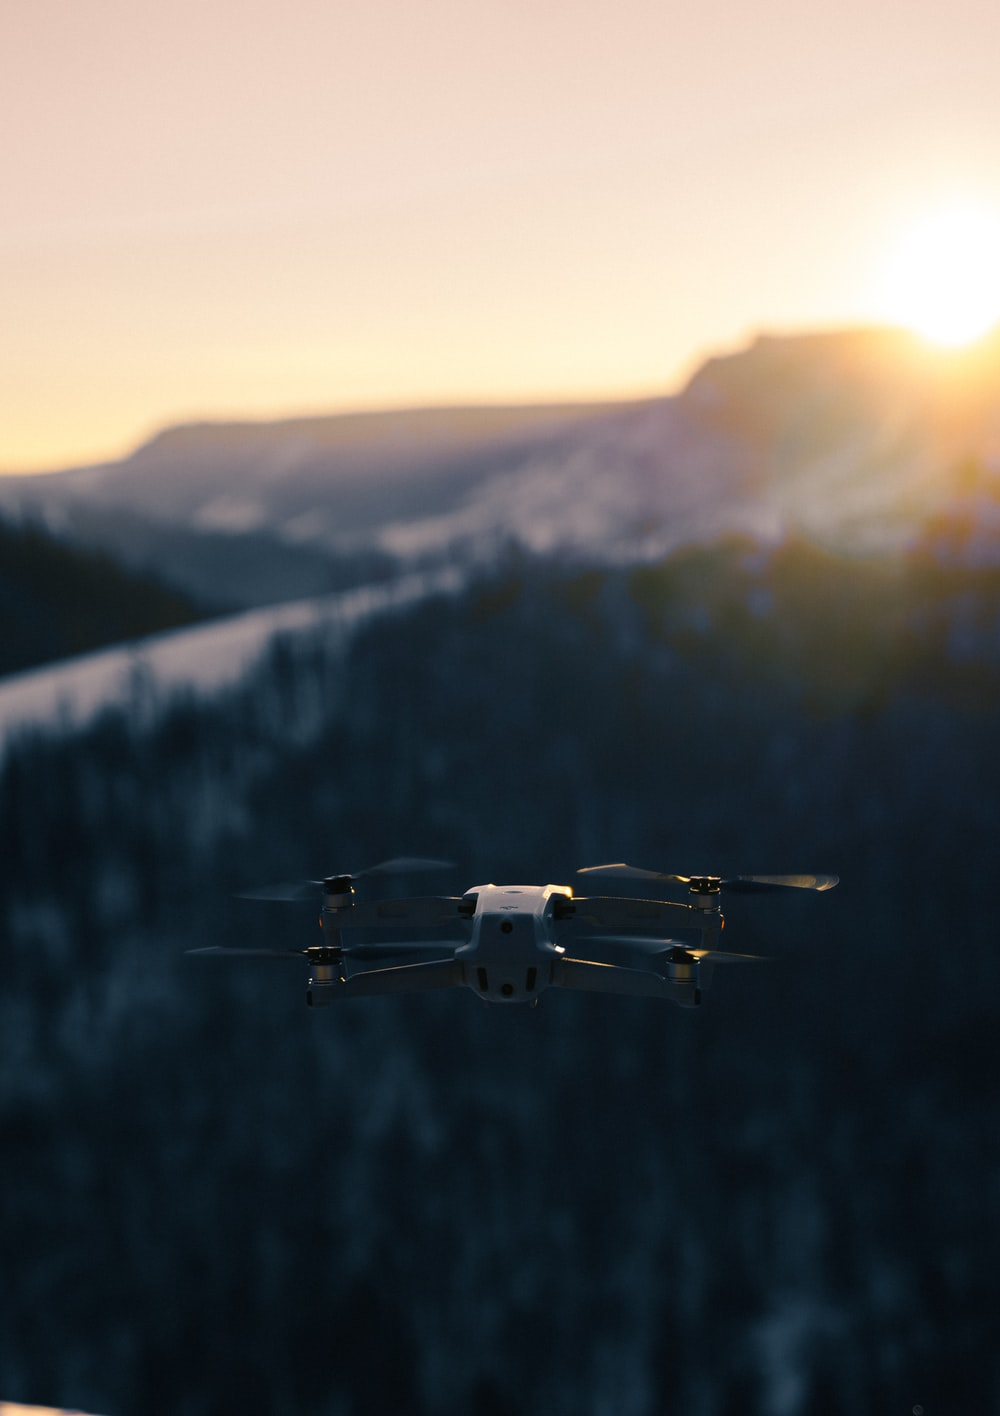 white and black drone flying over the green trees during daytime